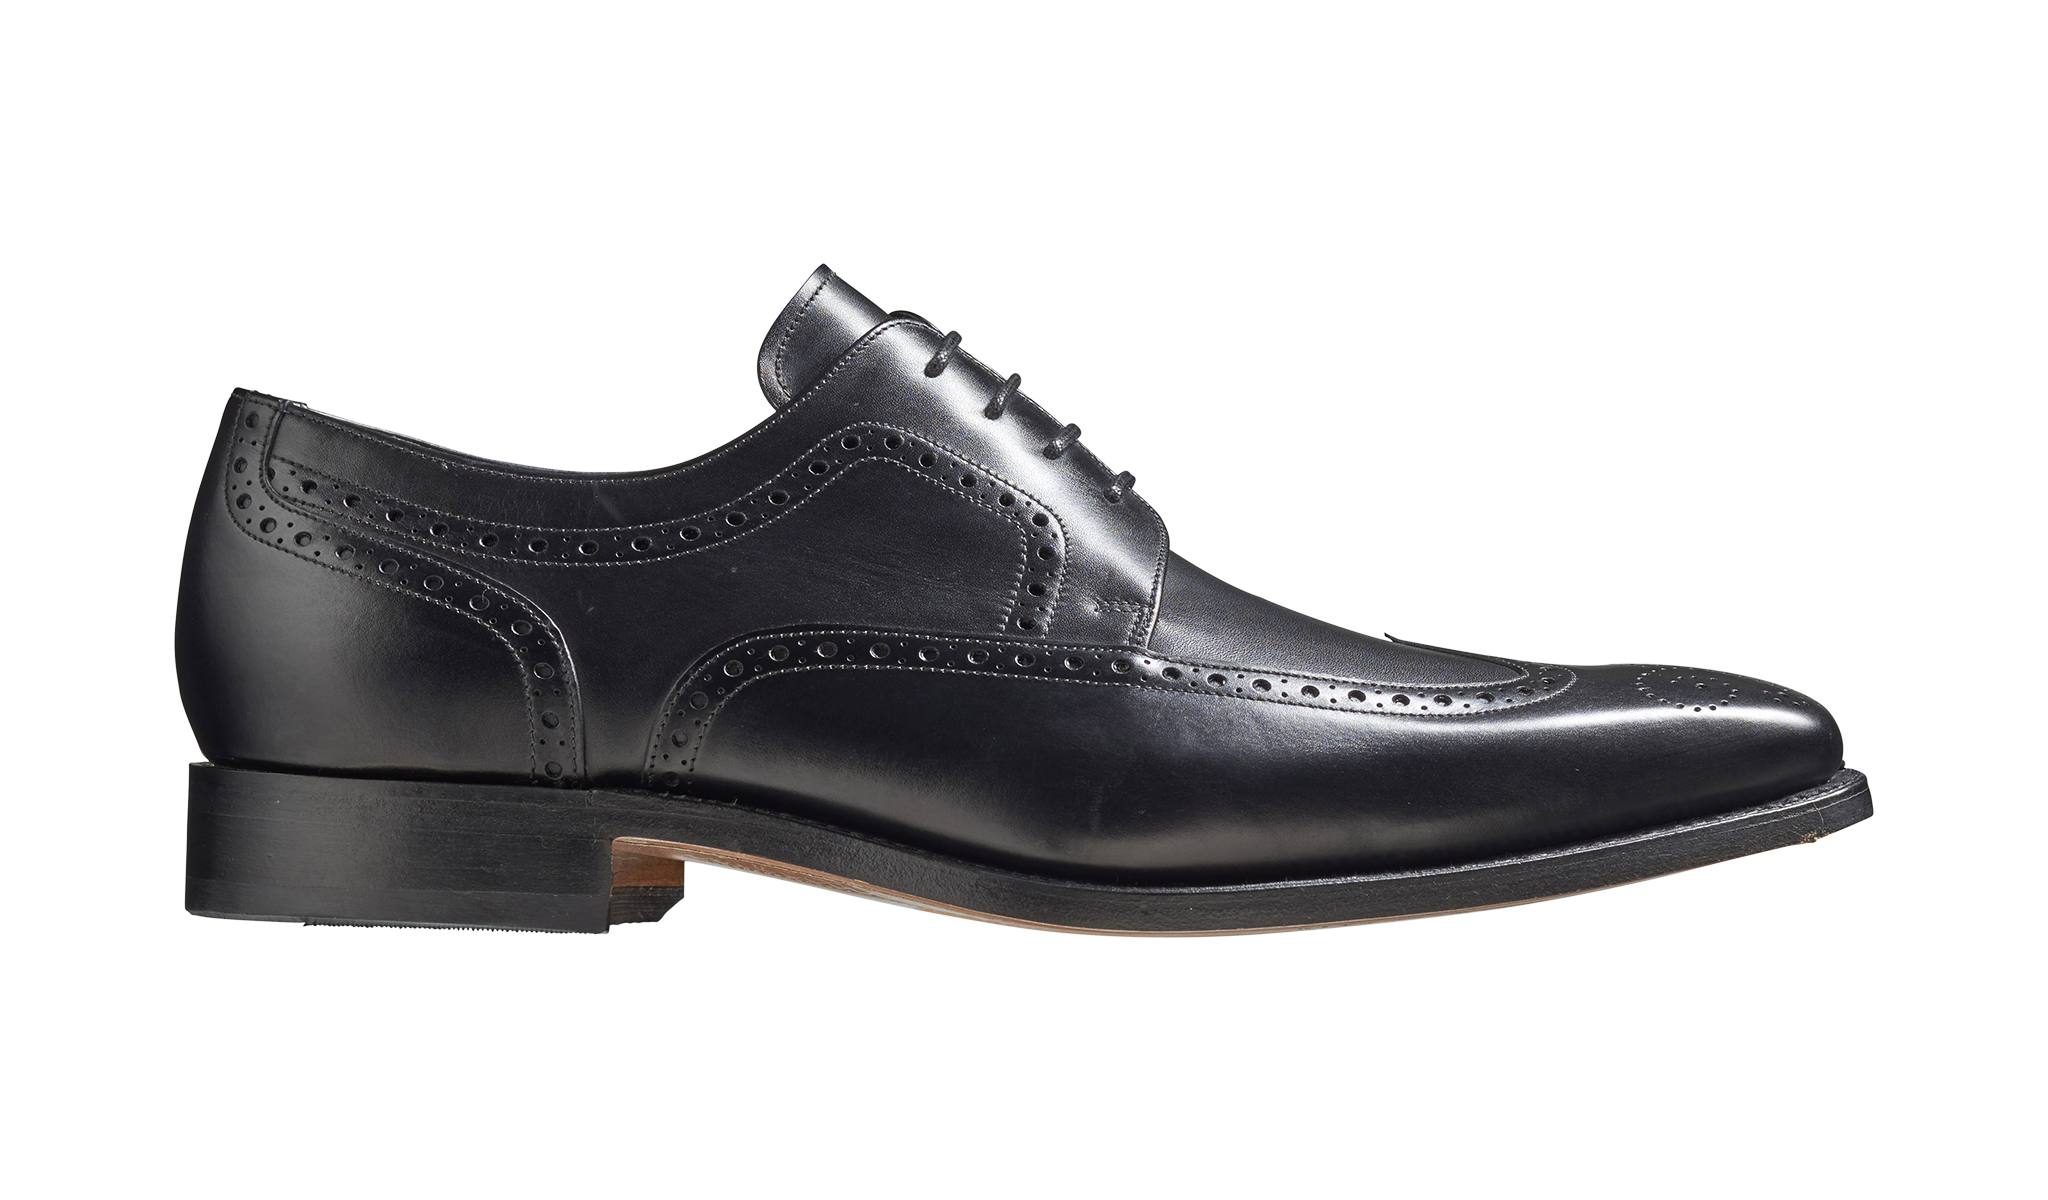 Barker Larry Brogue Derby - Black Calf